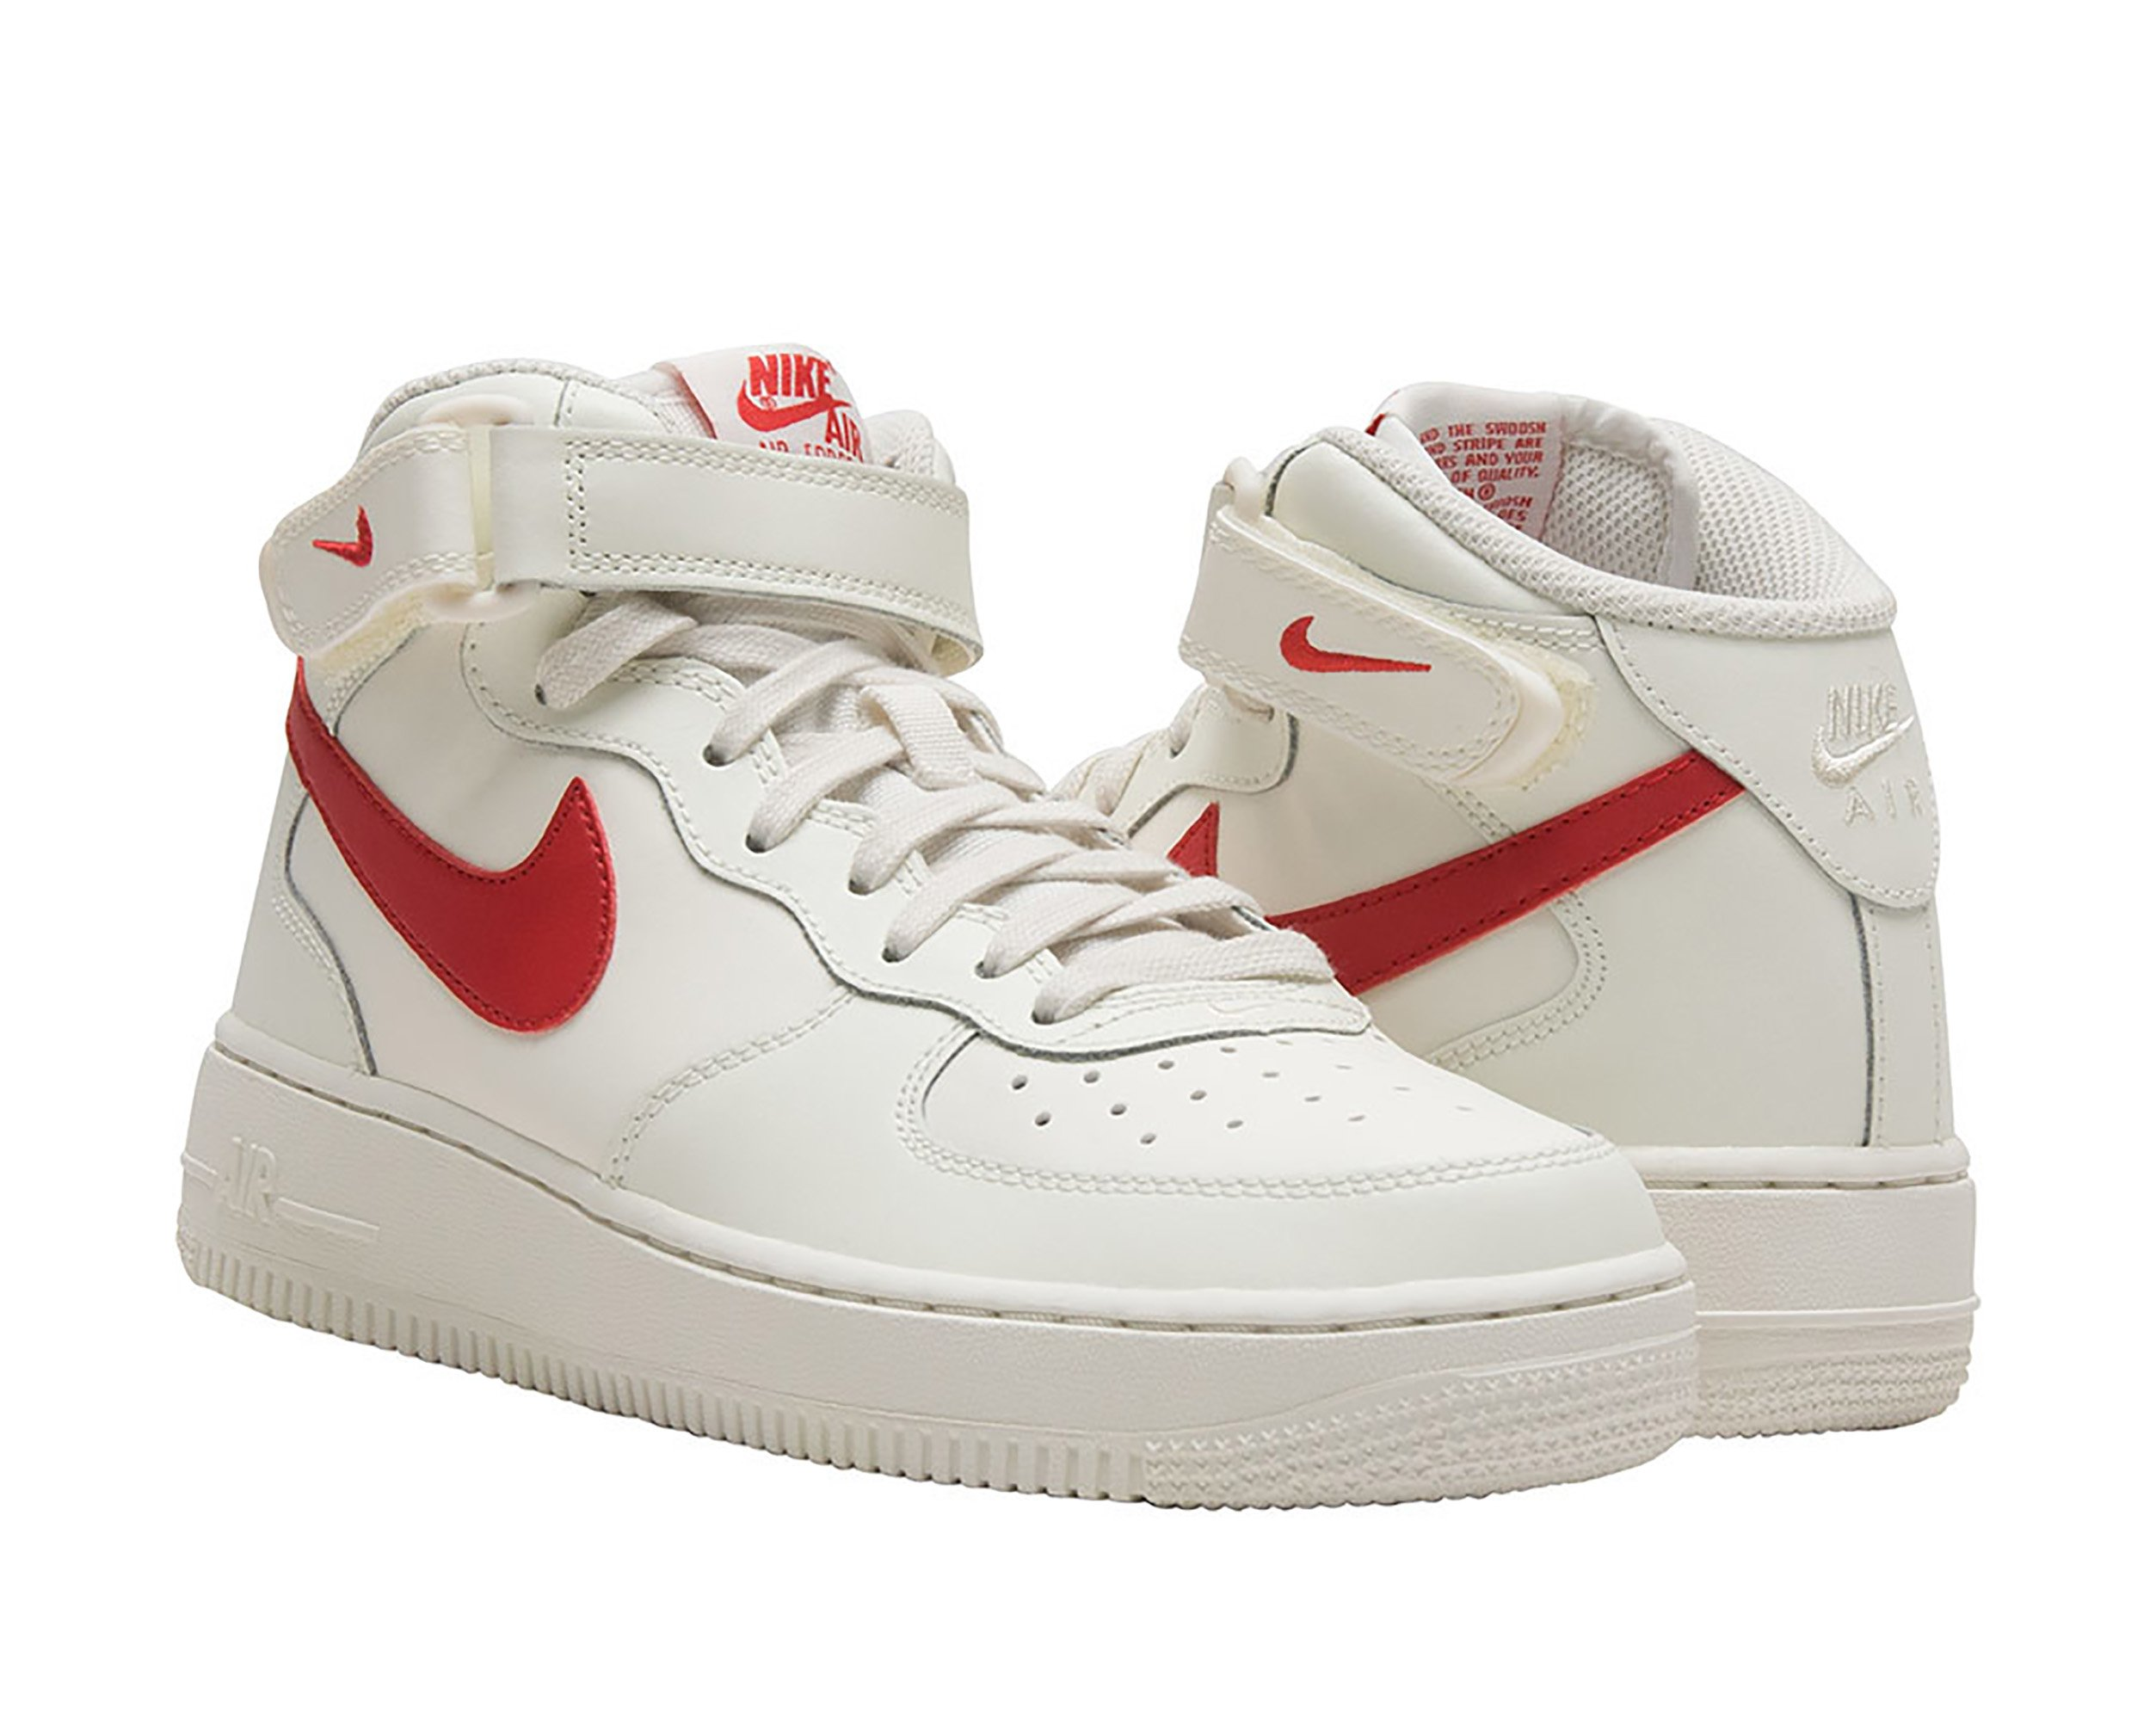 Nike Boy's Air Force 1 Mid Basketball Shoe Sail/University Red Size 4.5Y by NIKE